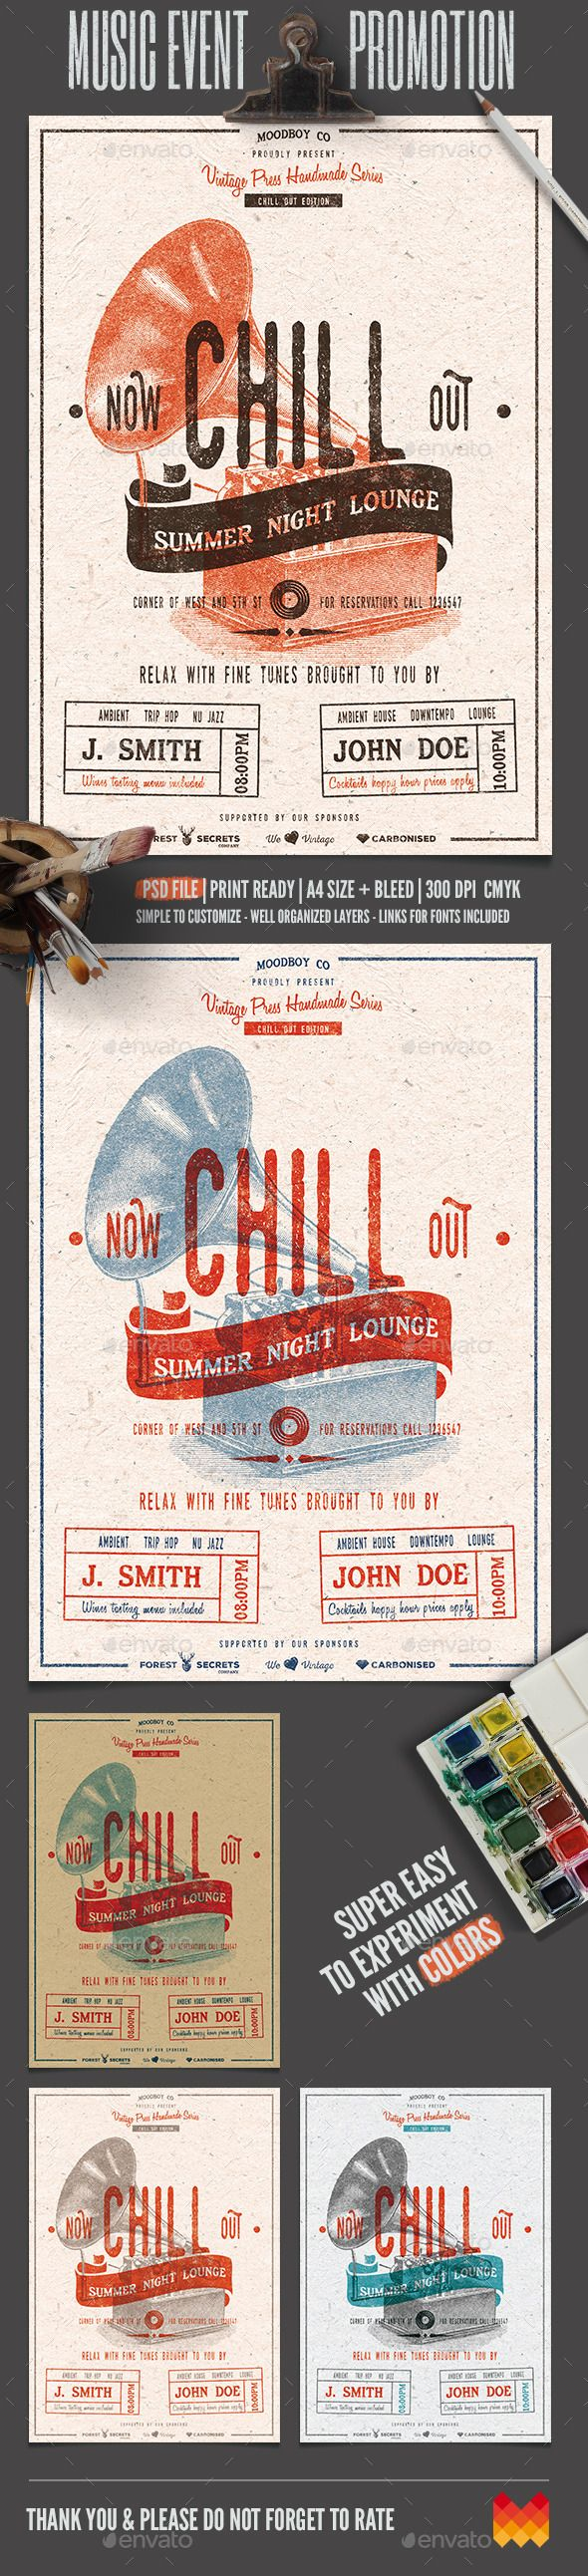 Chill Out  Lounge Flyer/Poster — Photoshop PSD #indie #scalable • Available here → https://graphicriver.net/item/chill-out-lounge-flyerposter/11906839?ref=pxcr